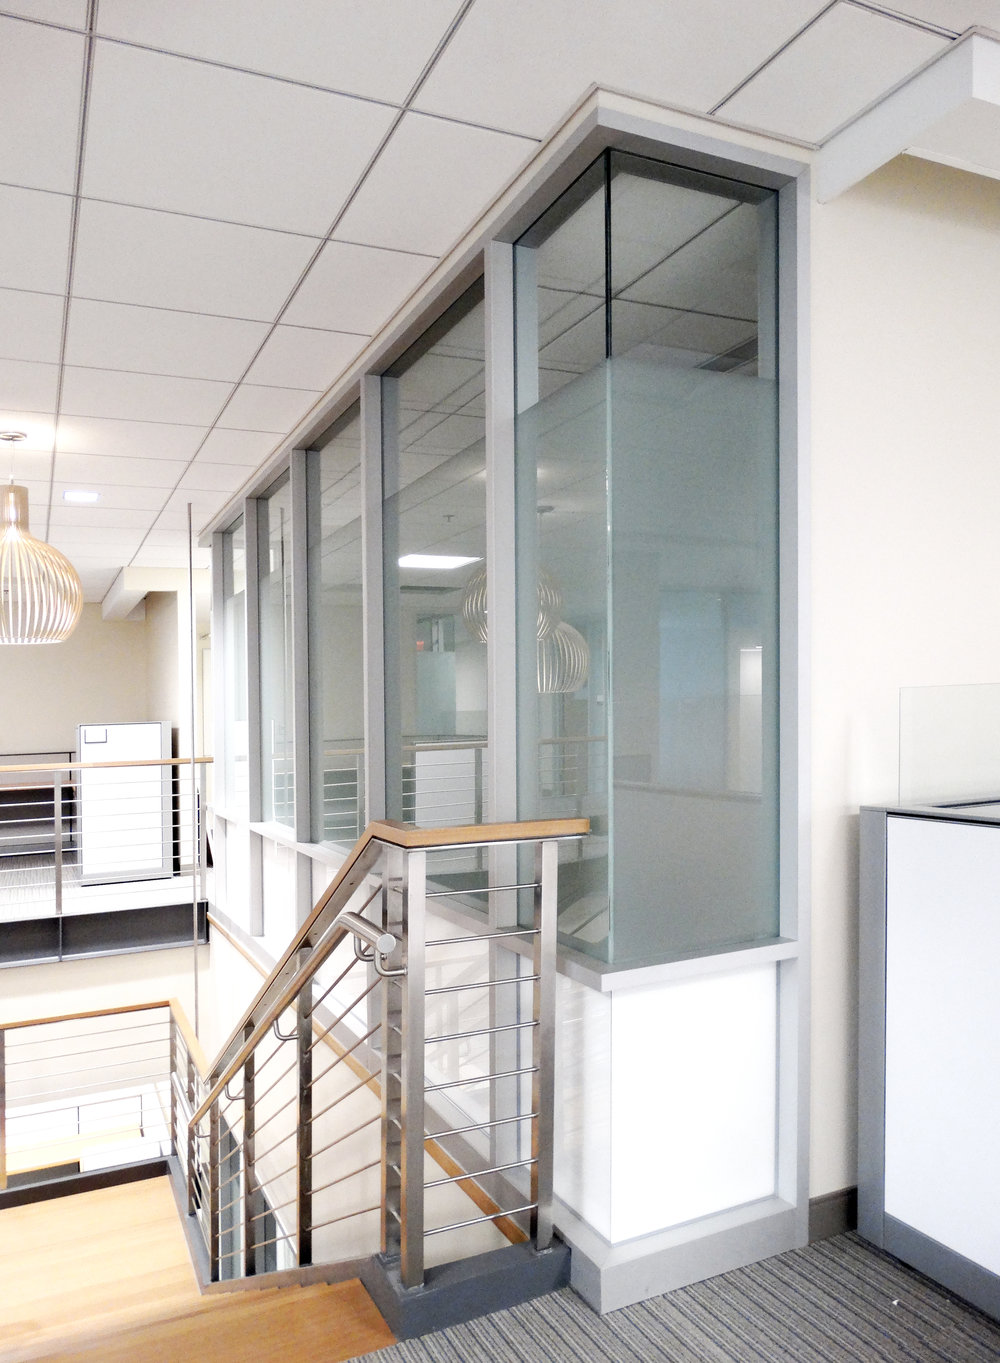 Encase Aluminum Framed Glass Corner Turn - Spaceworks AI.jpg